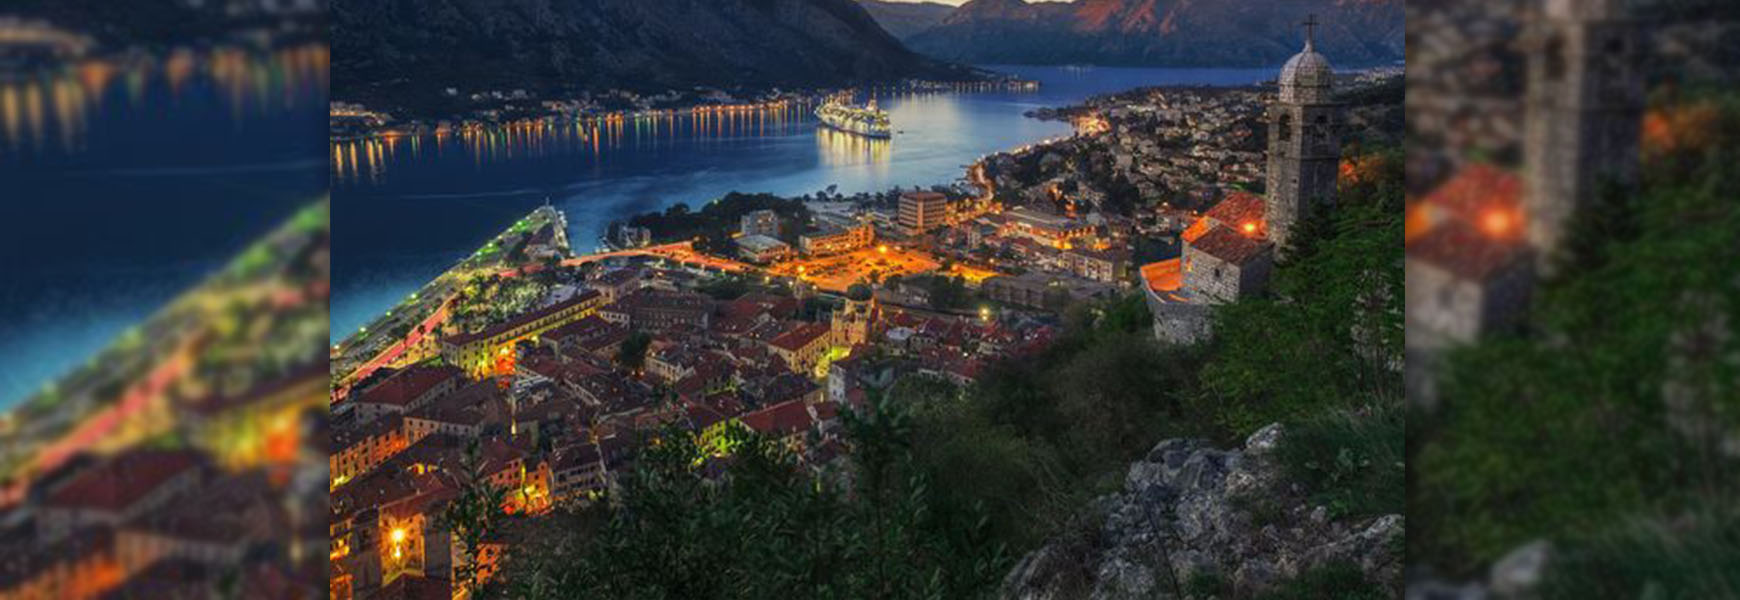 Make Montenegro your next holiday destination for some James Bond-style glamour on a budget – Mirror UK